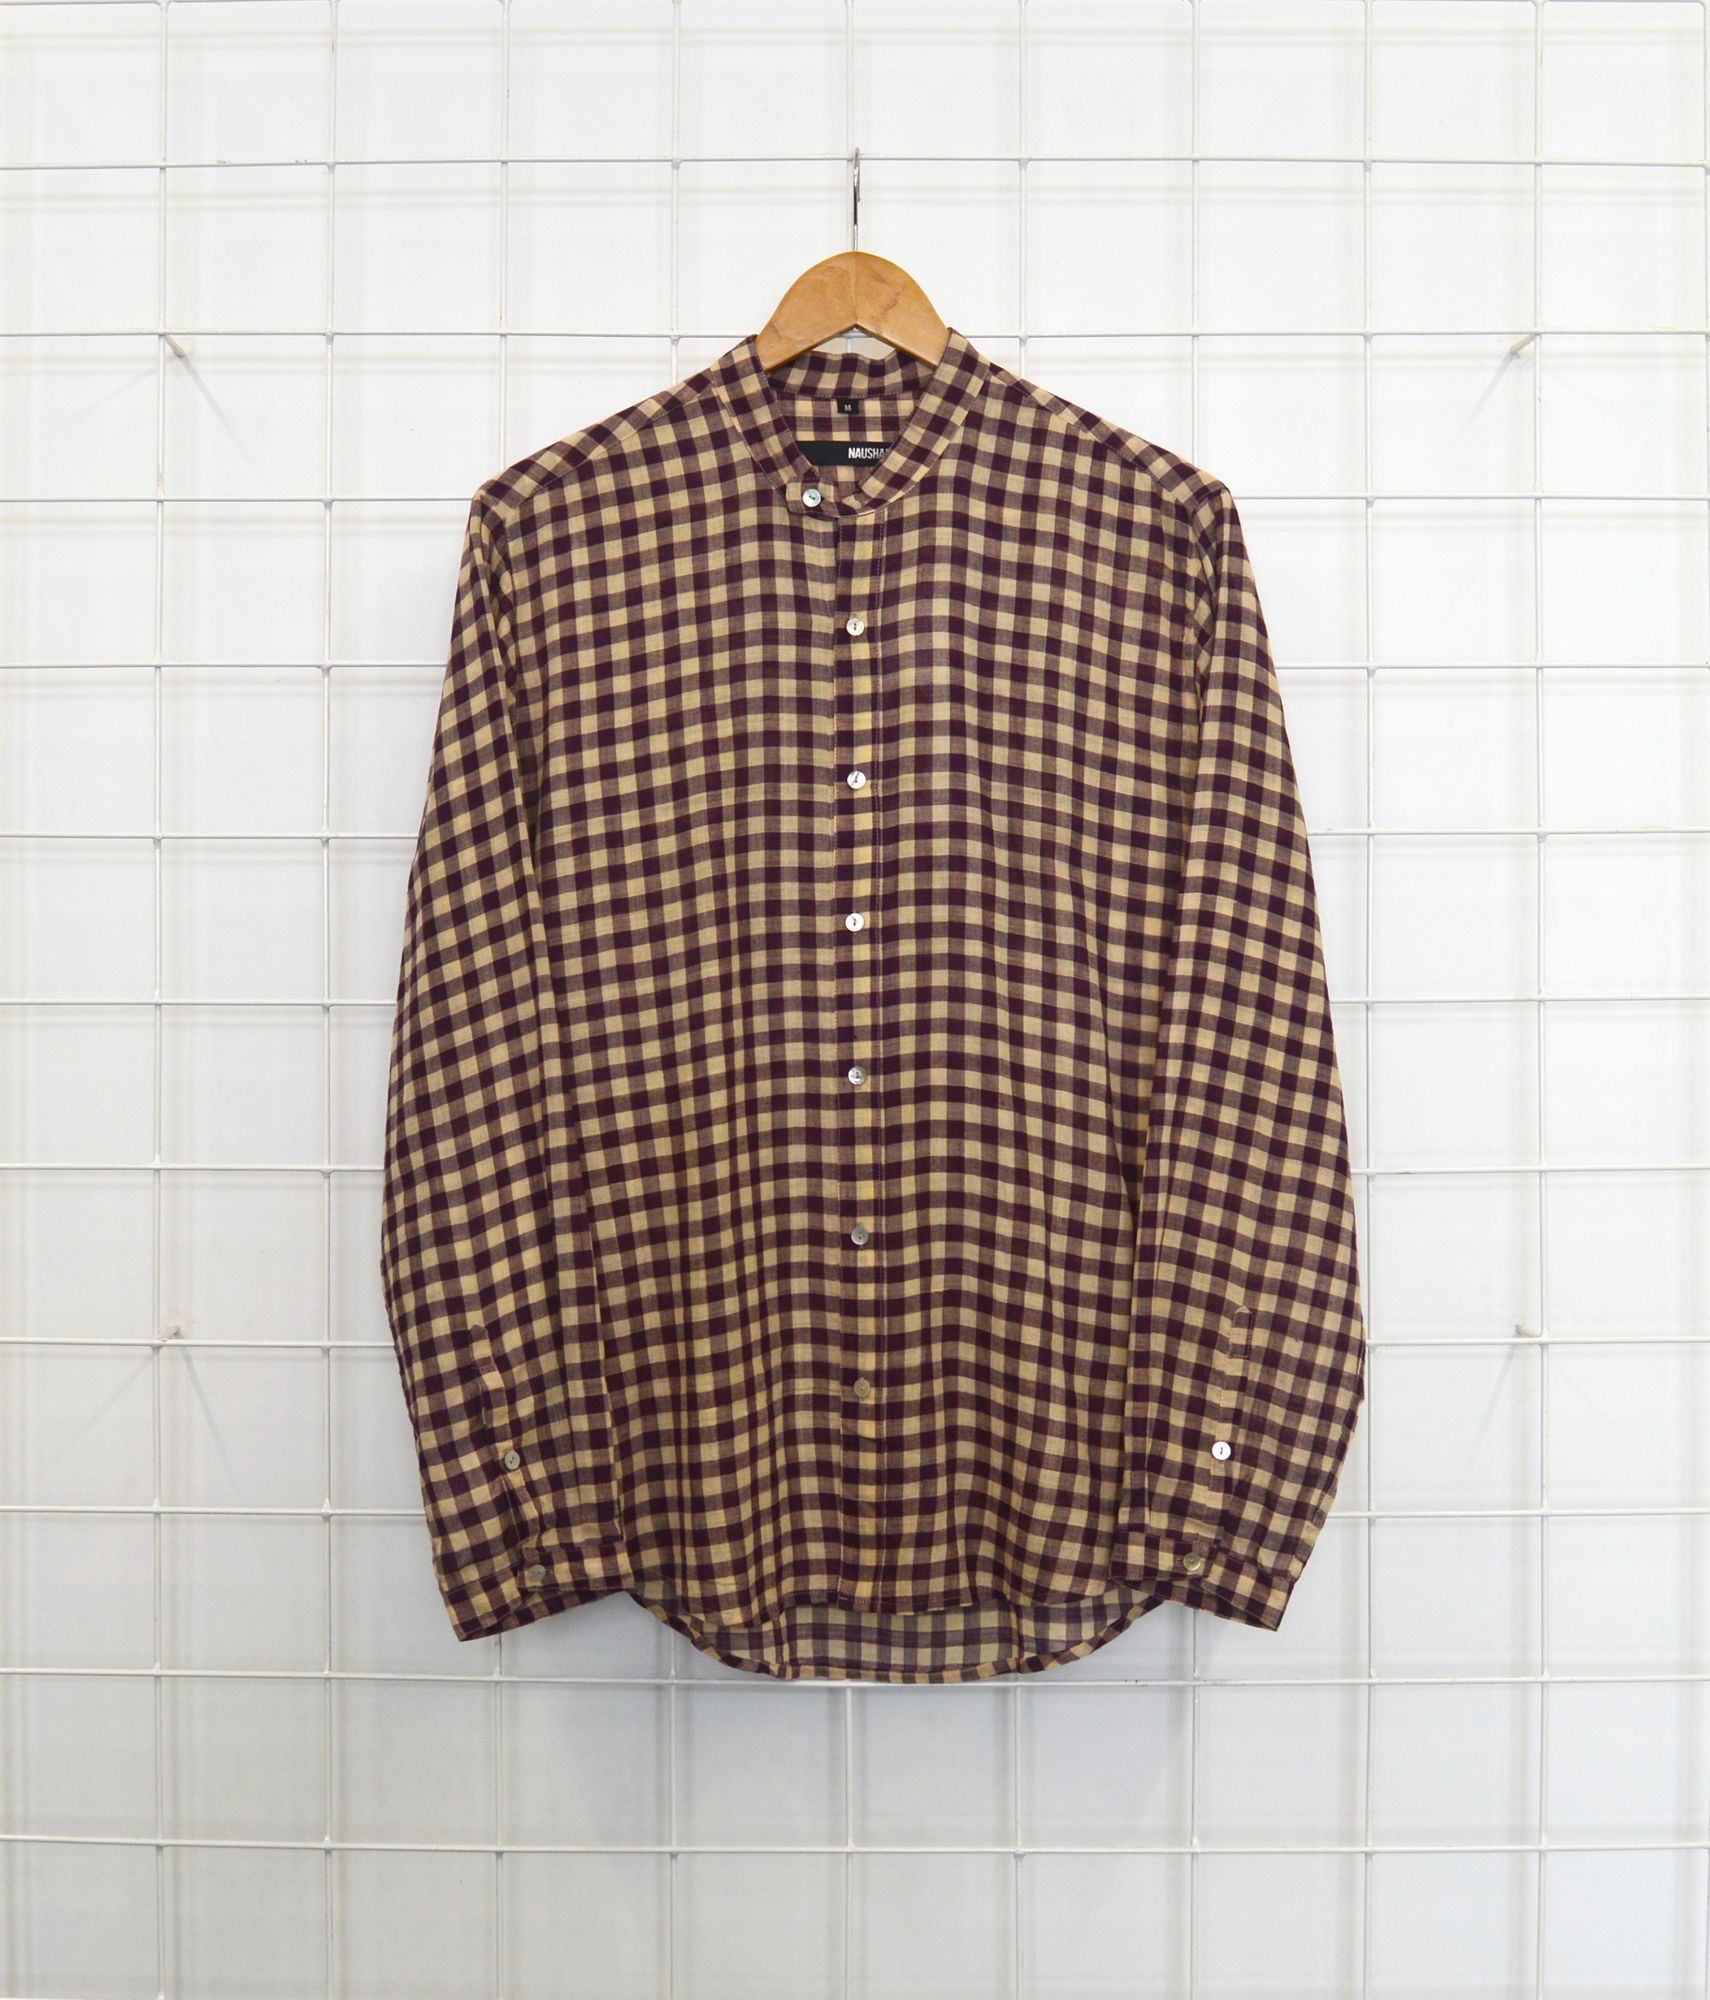 Double button Shirt - south checks